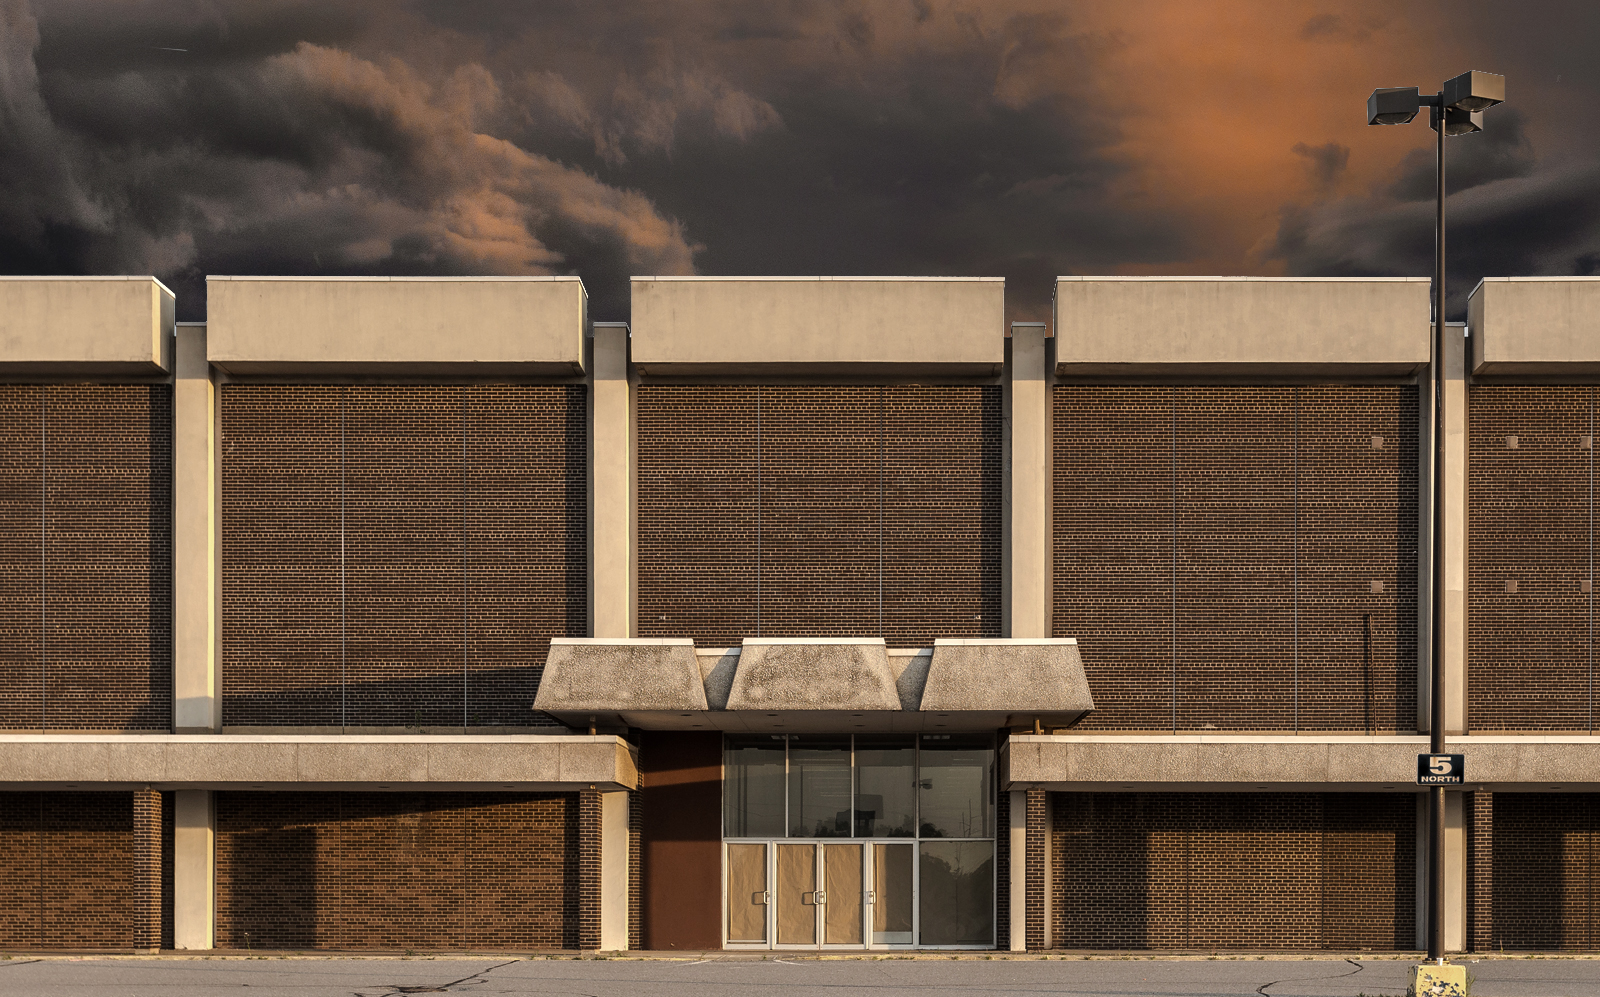 Many of the lower-tier malls that will be sold will likely be redeveloped into something else. (Getty)